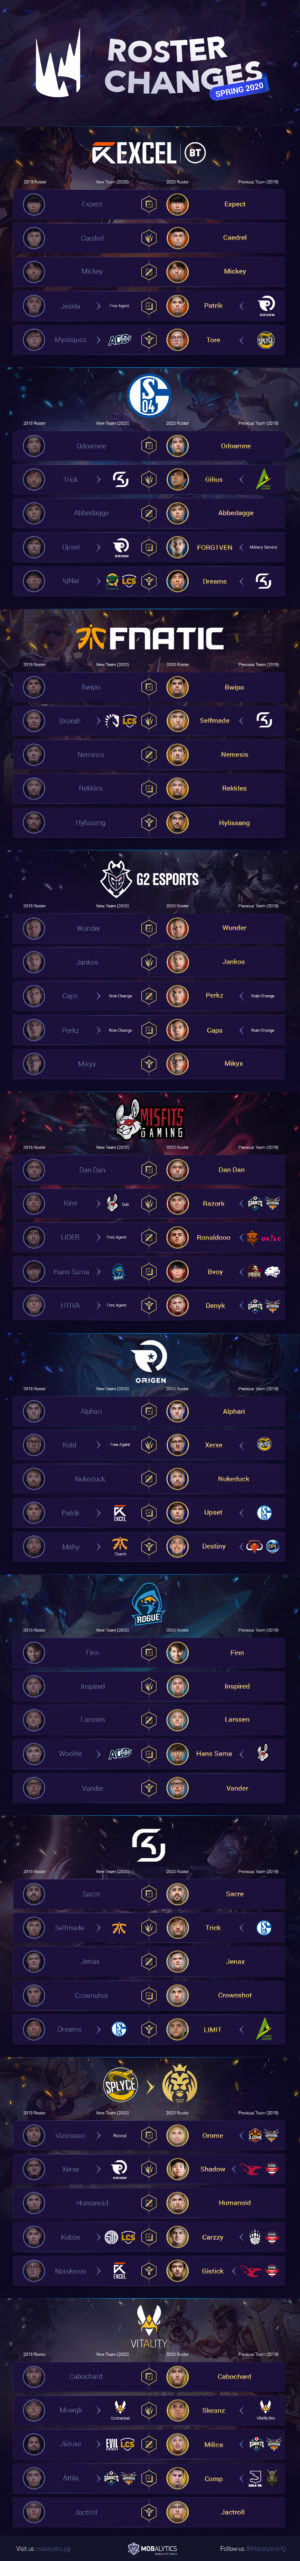 LEC Roster Changes Infographic (Spring 2020 Teams)